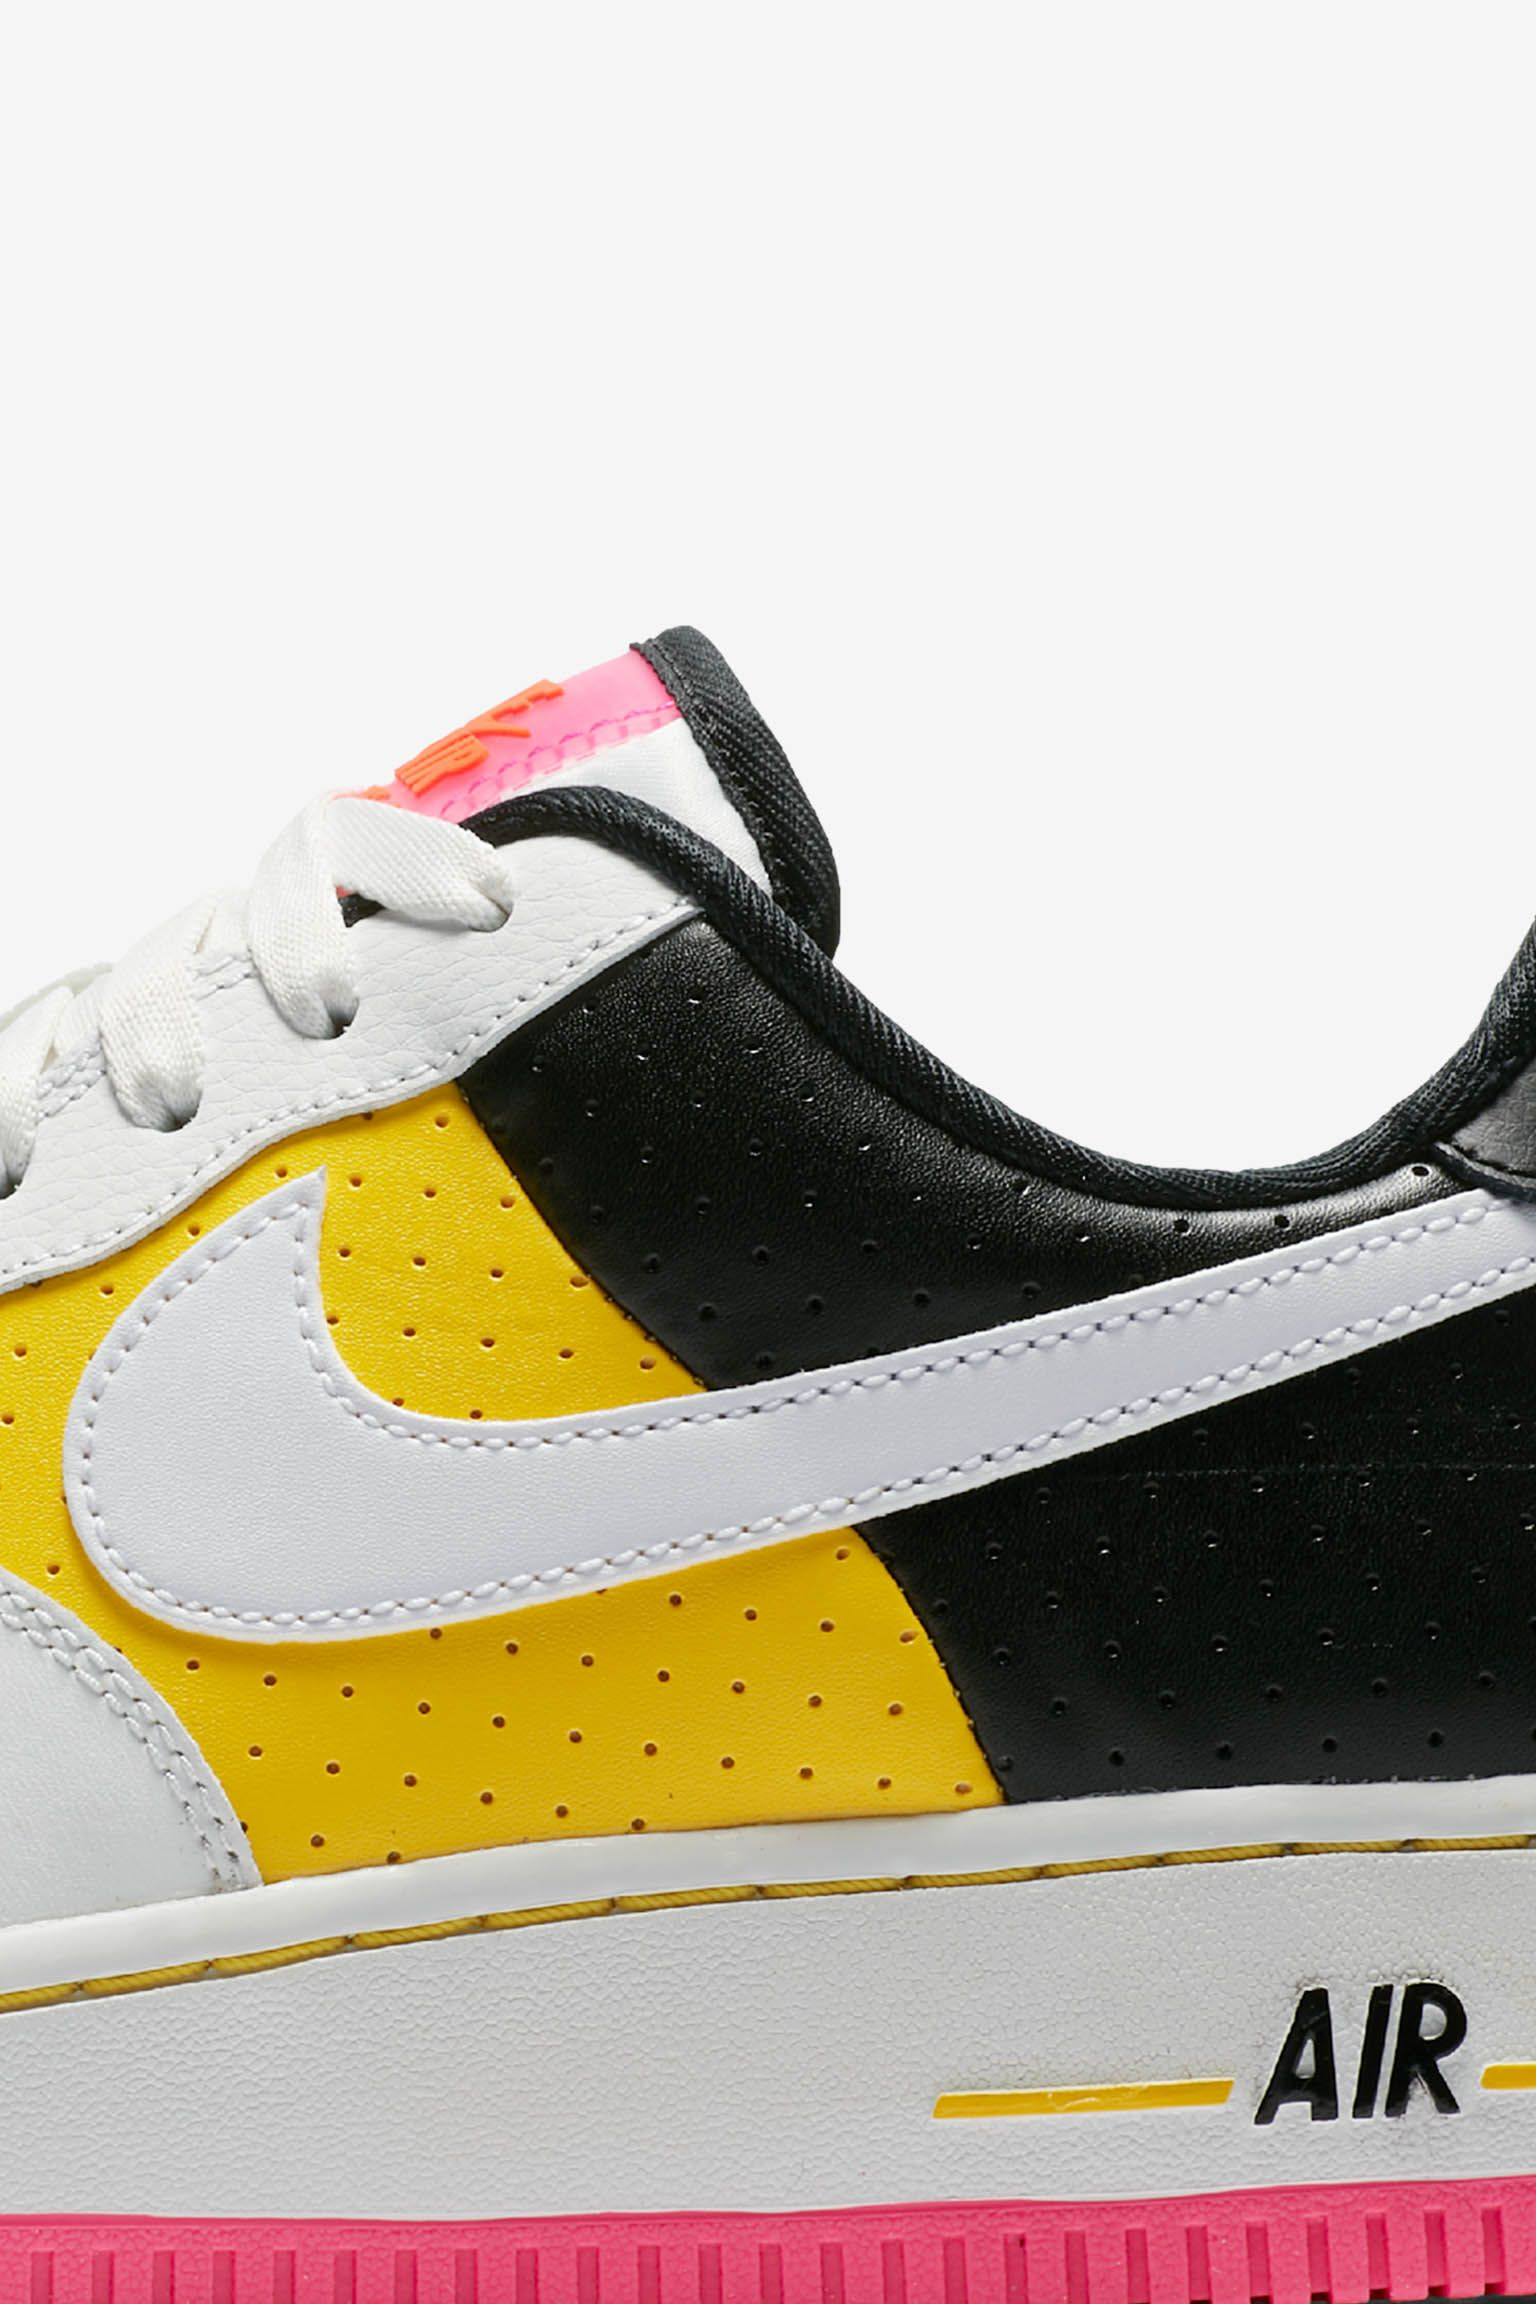 Nike Women's Air Force 1 Moto 'Tour Yellow' Release Date. Nike SNKRS